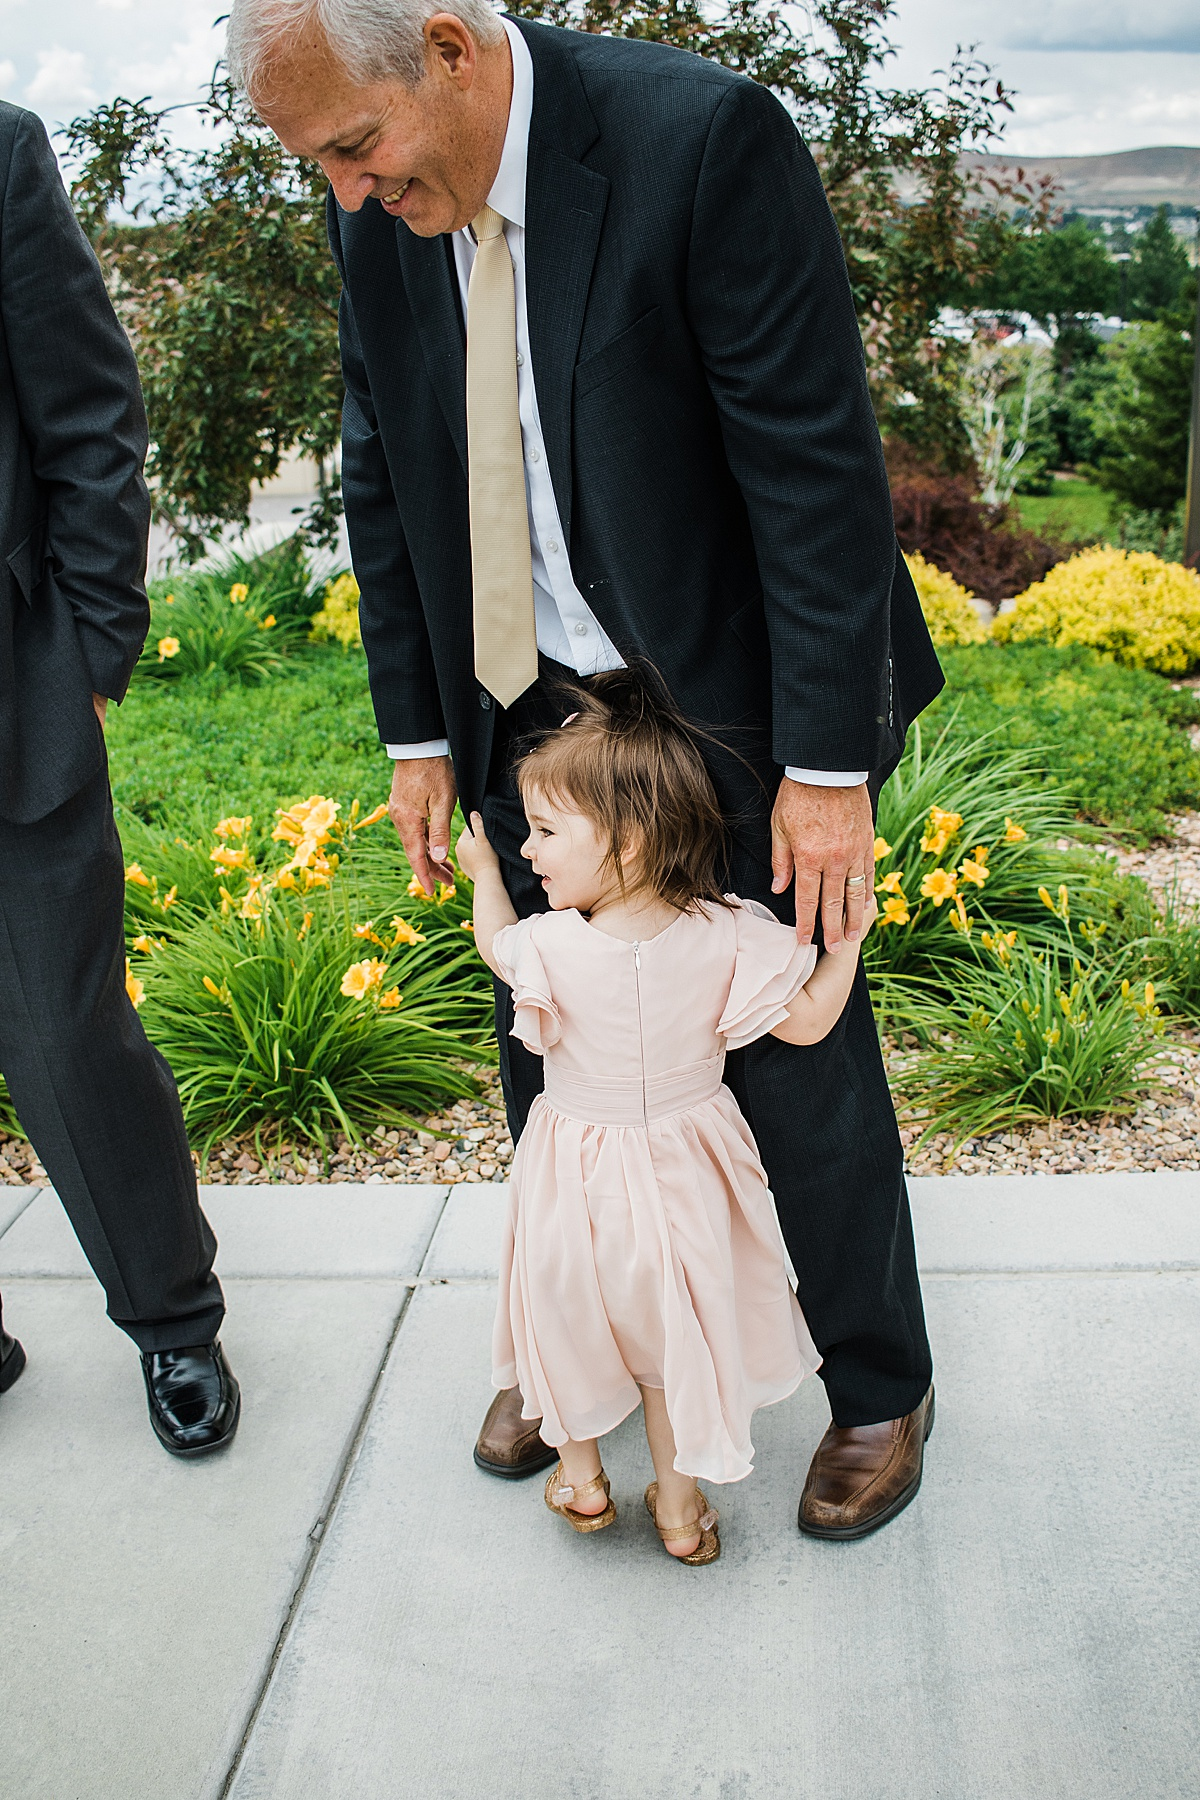 The One and Only Reason I Probably Shouldn't have Photographed my Brothers Wedding